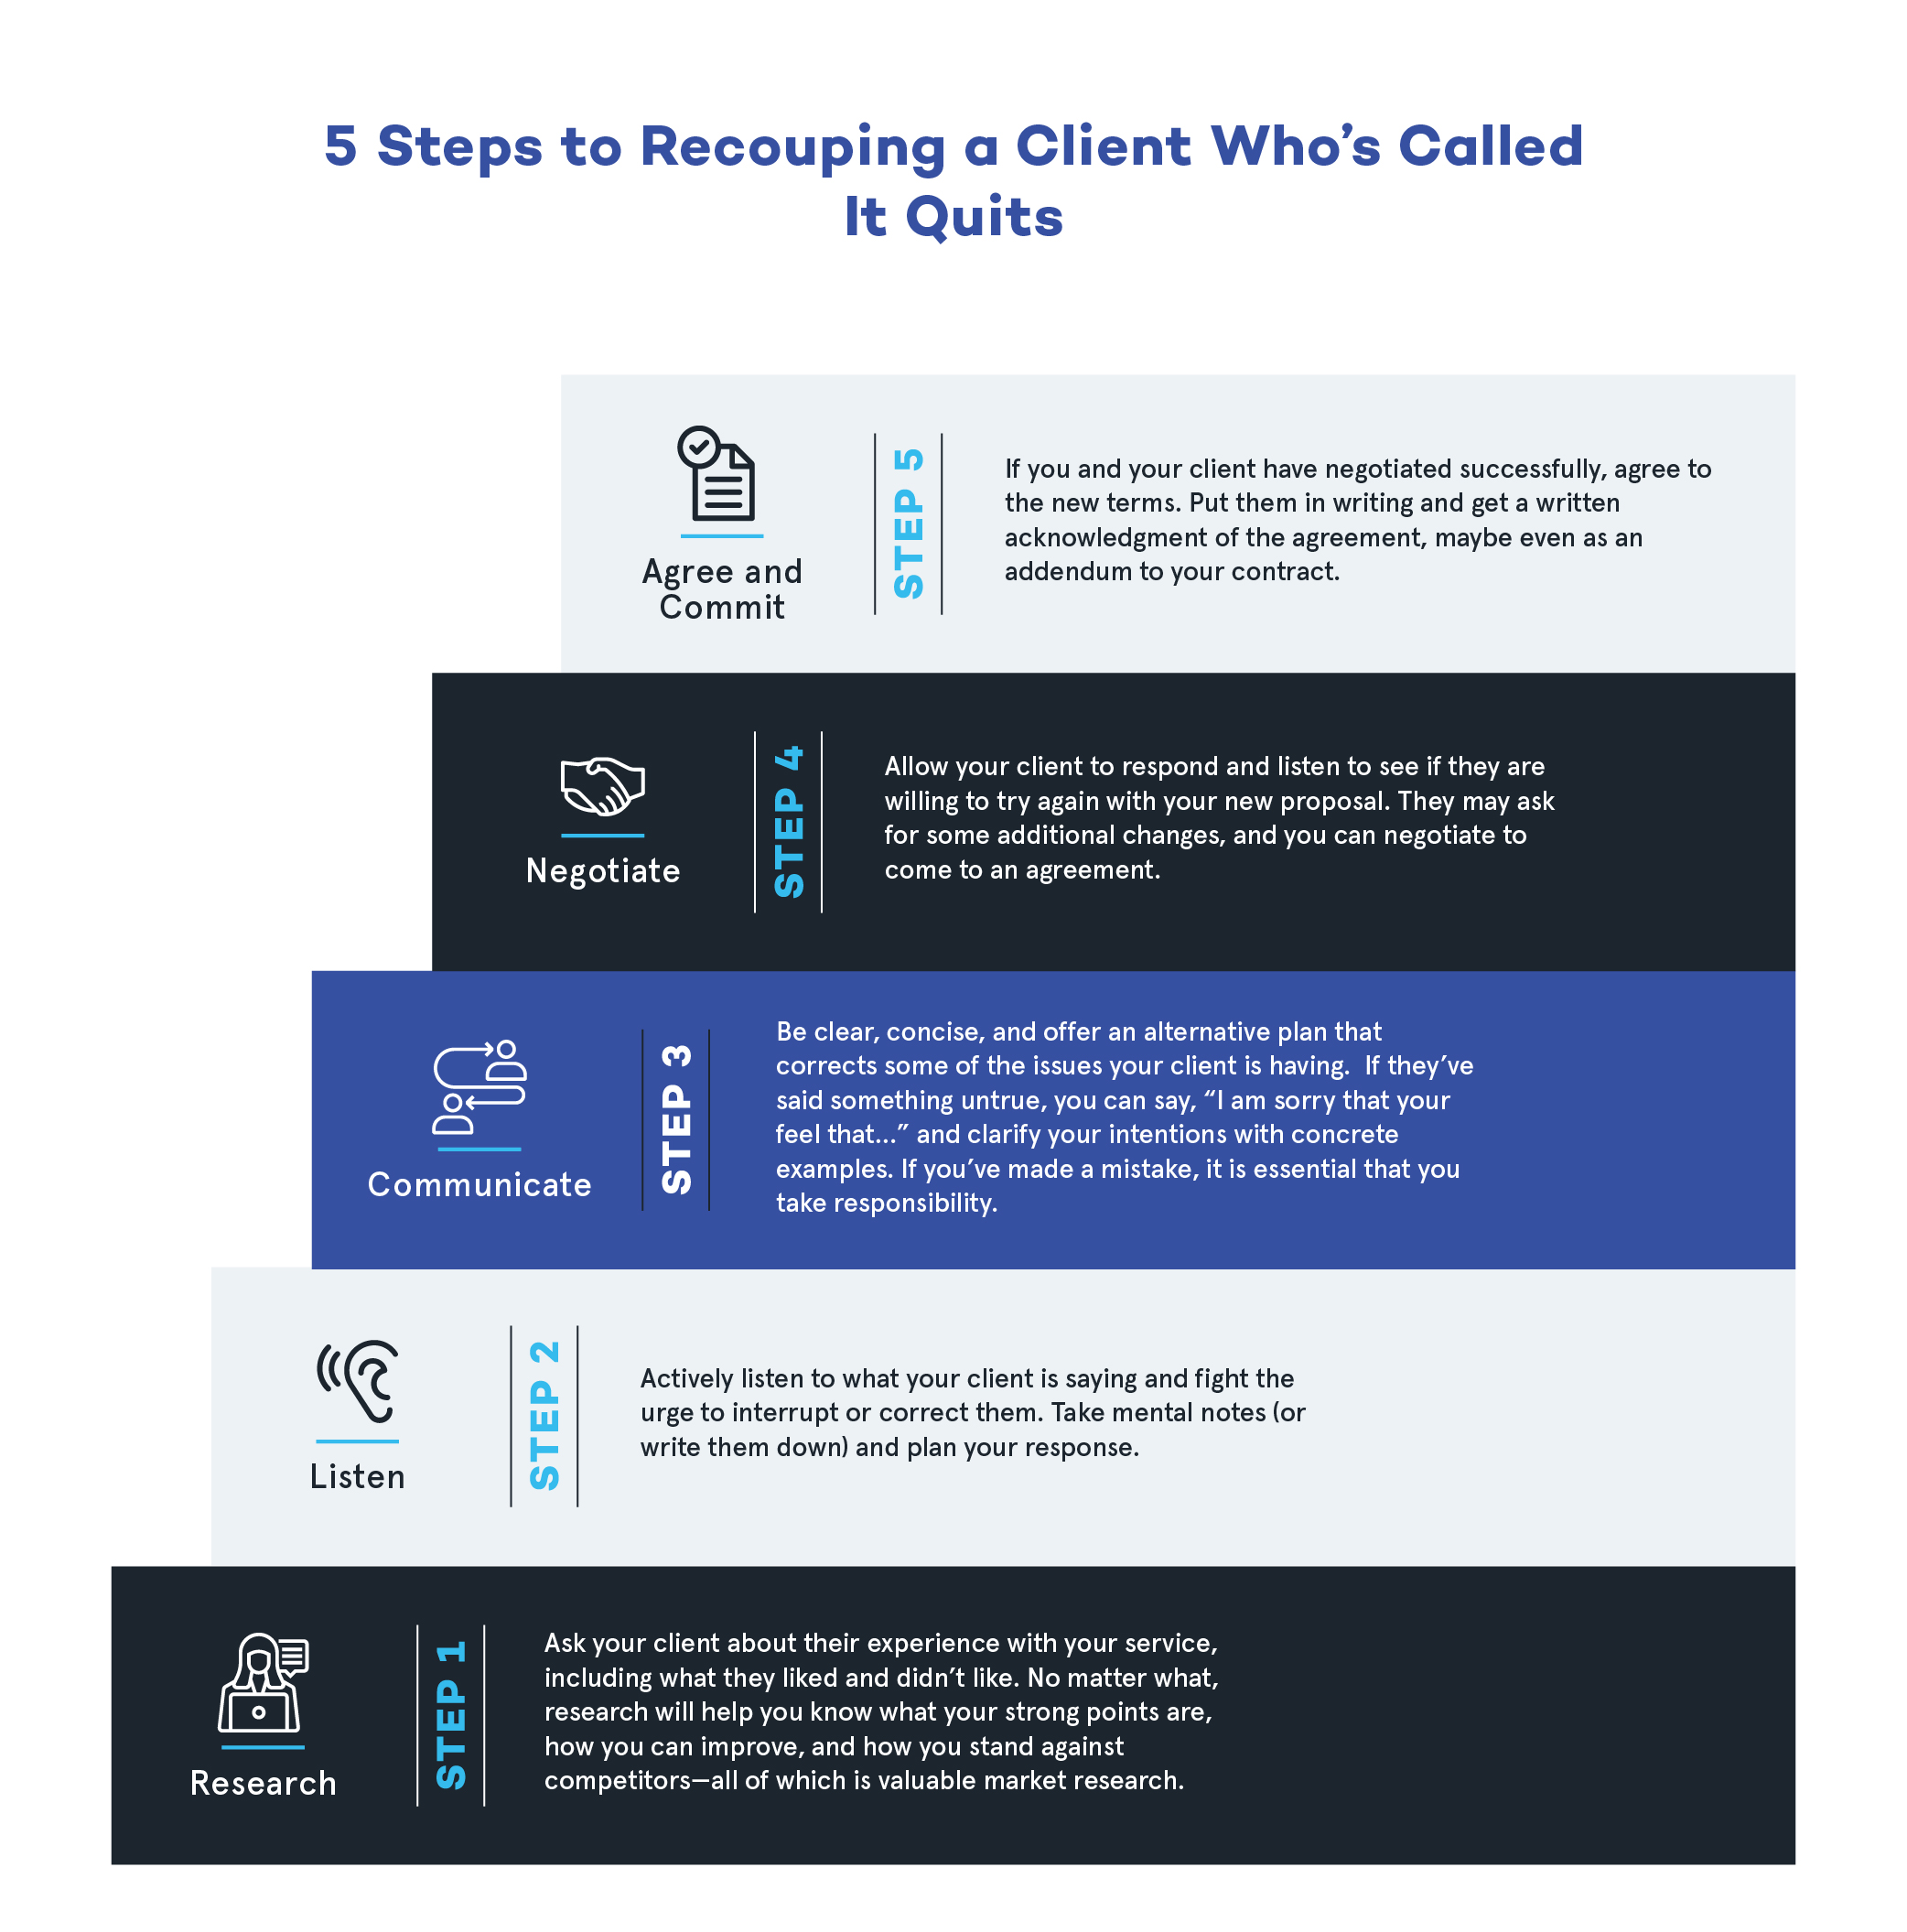 5 Stps to Recouping a Client_V2